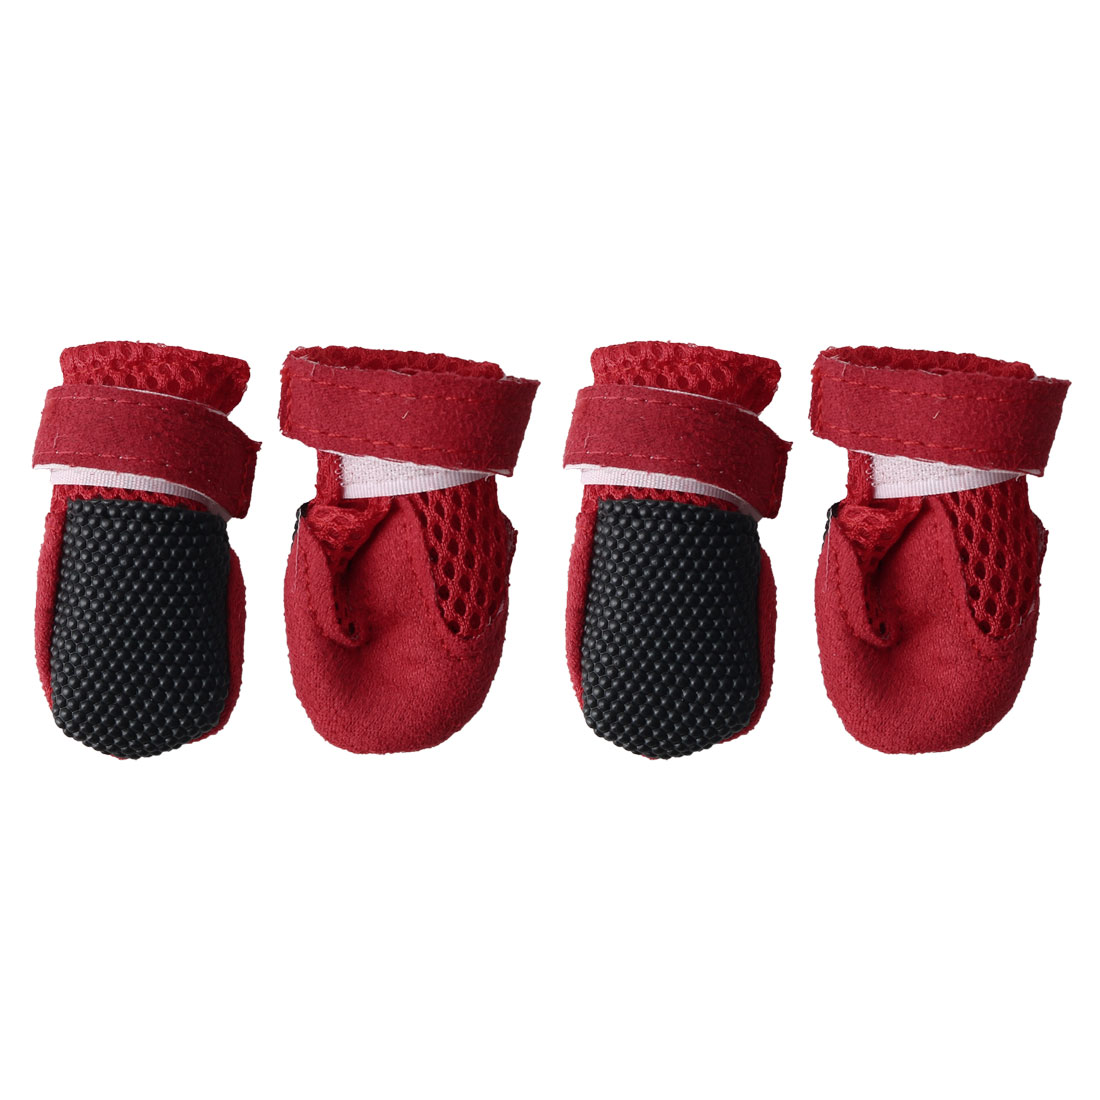 Dog Shoes Pet Boots Wear Resistant Breathable Hiking Paw Protectors Red 4pcs, S